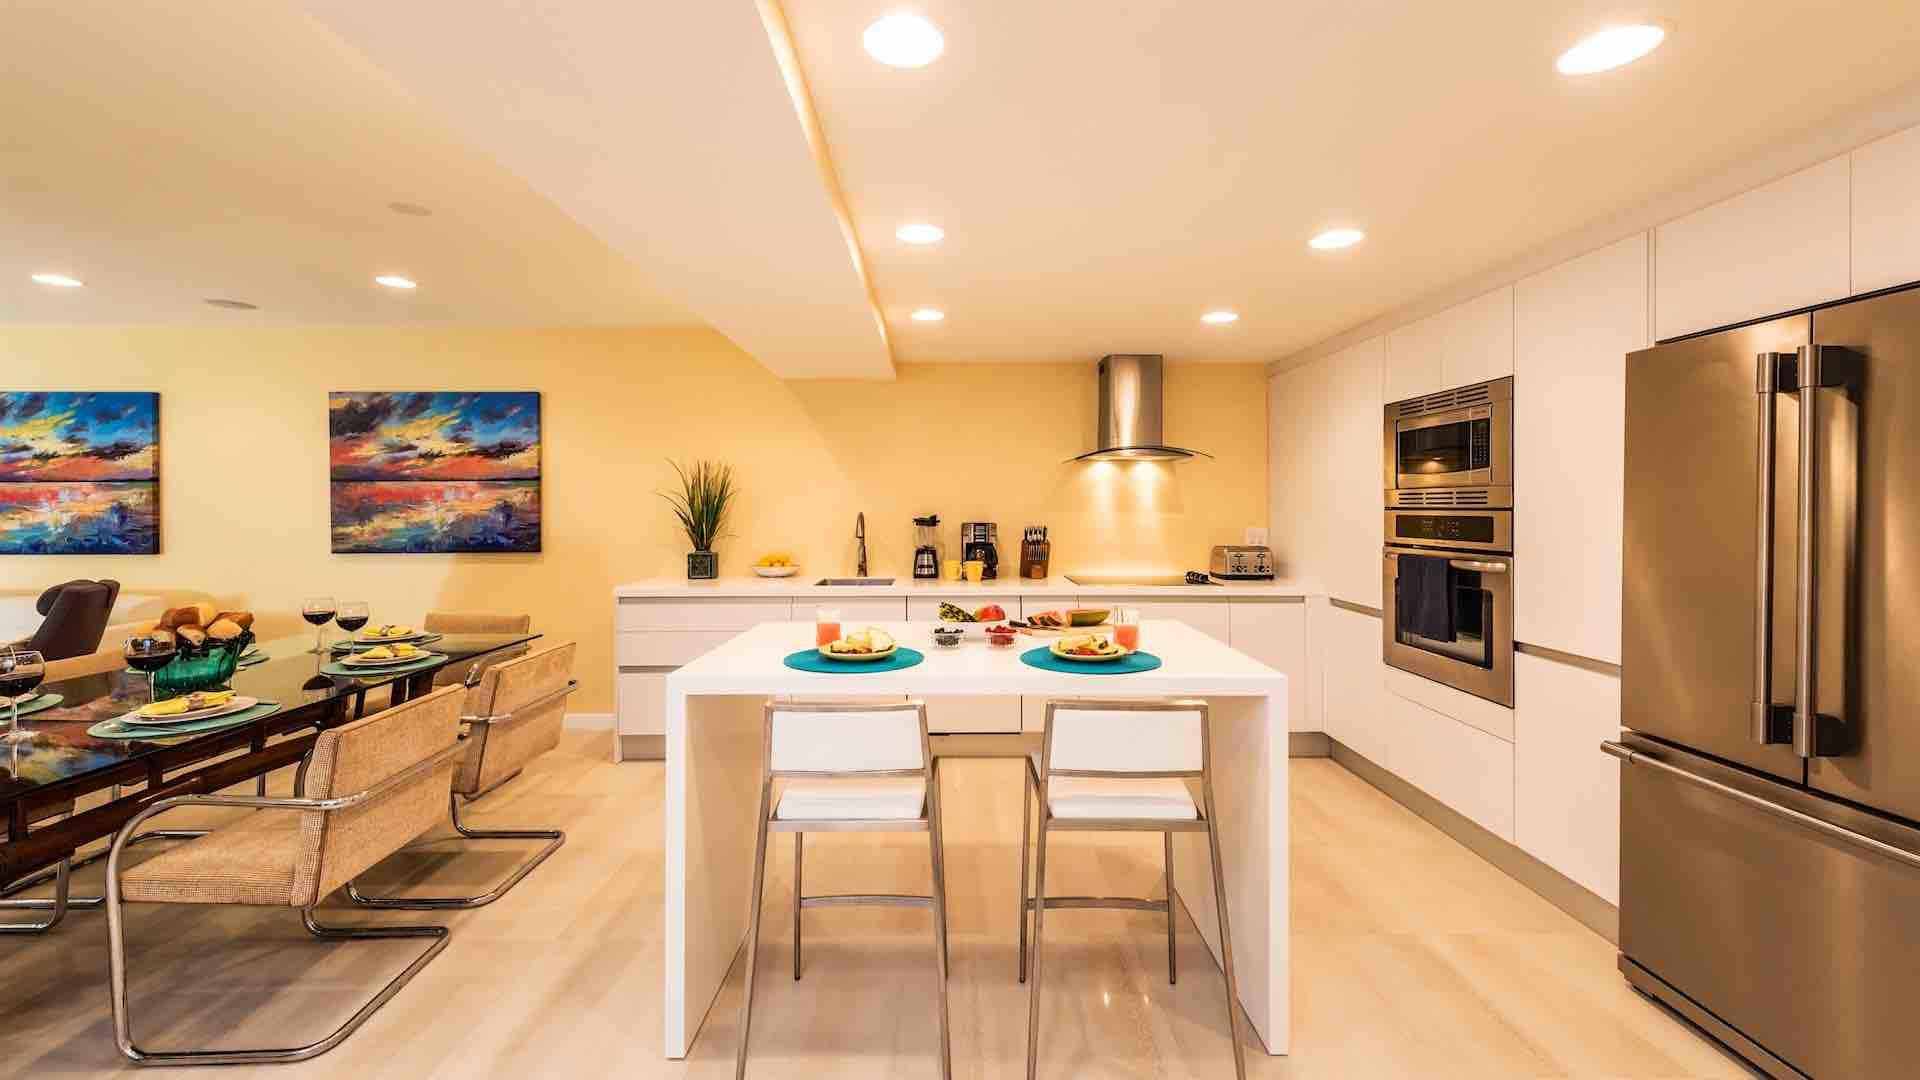 The fully equipped kitchen has everything you'll need to cook at home...